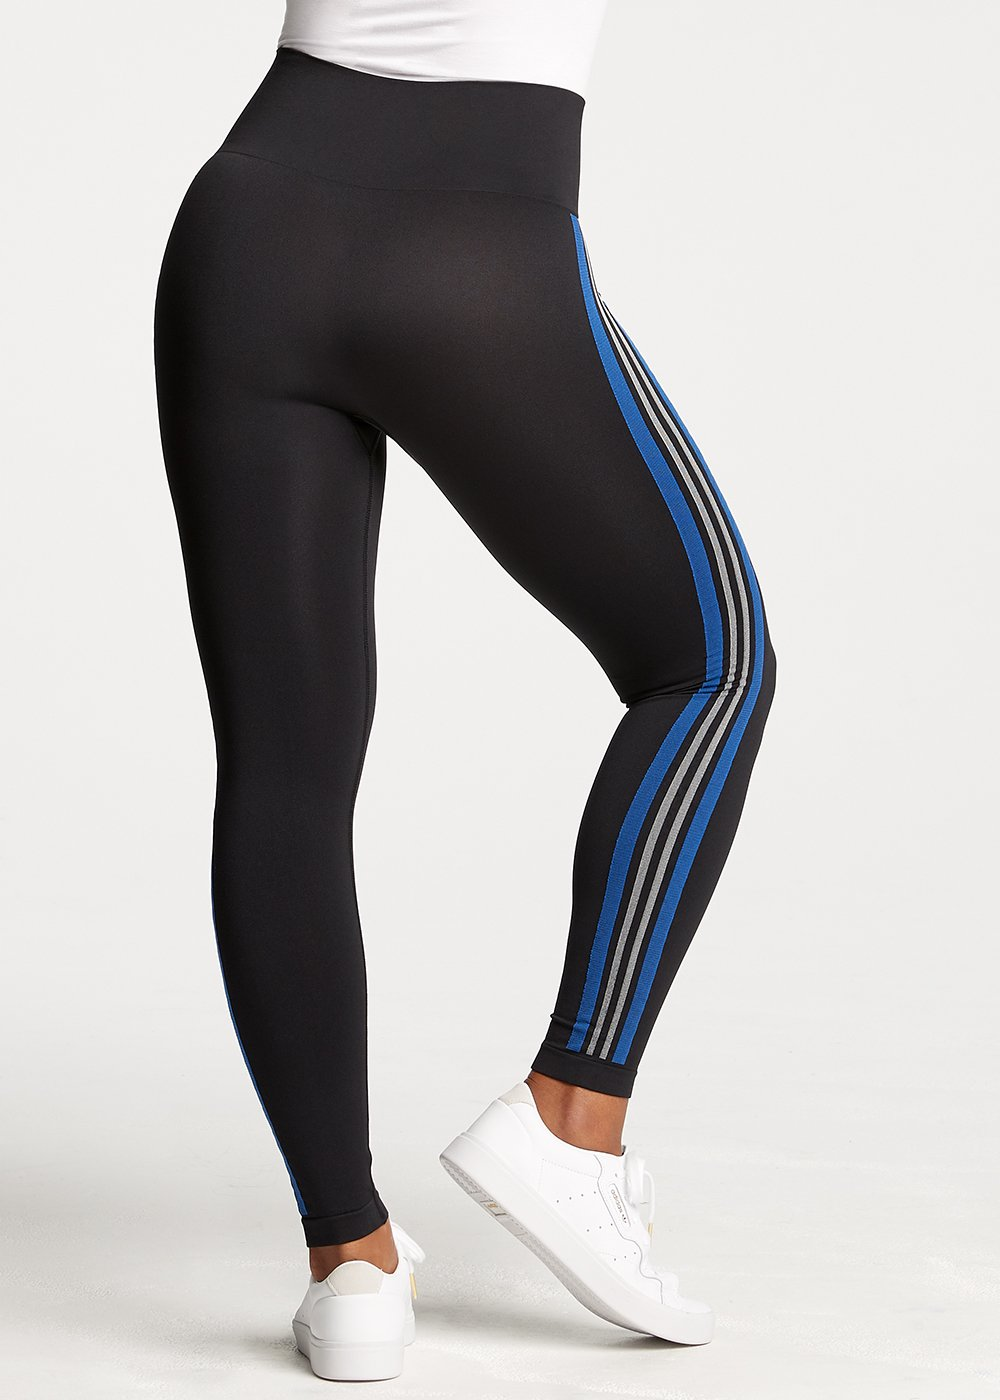 Black with White/Blue Stripe | 5' 9"